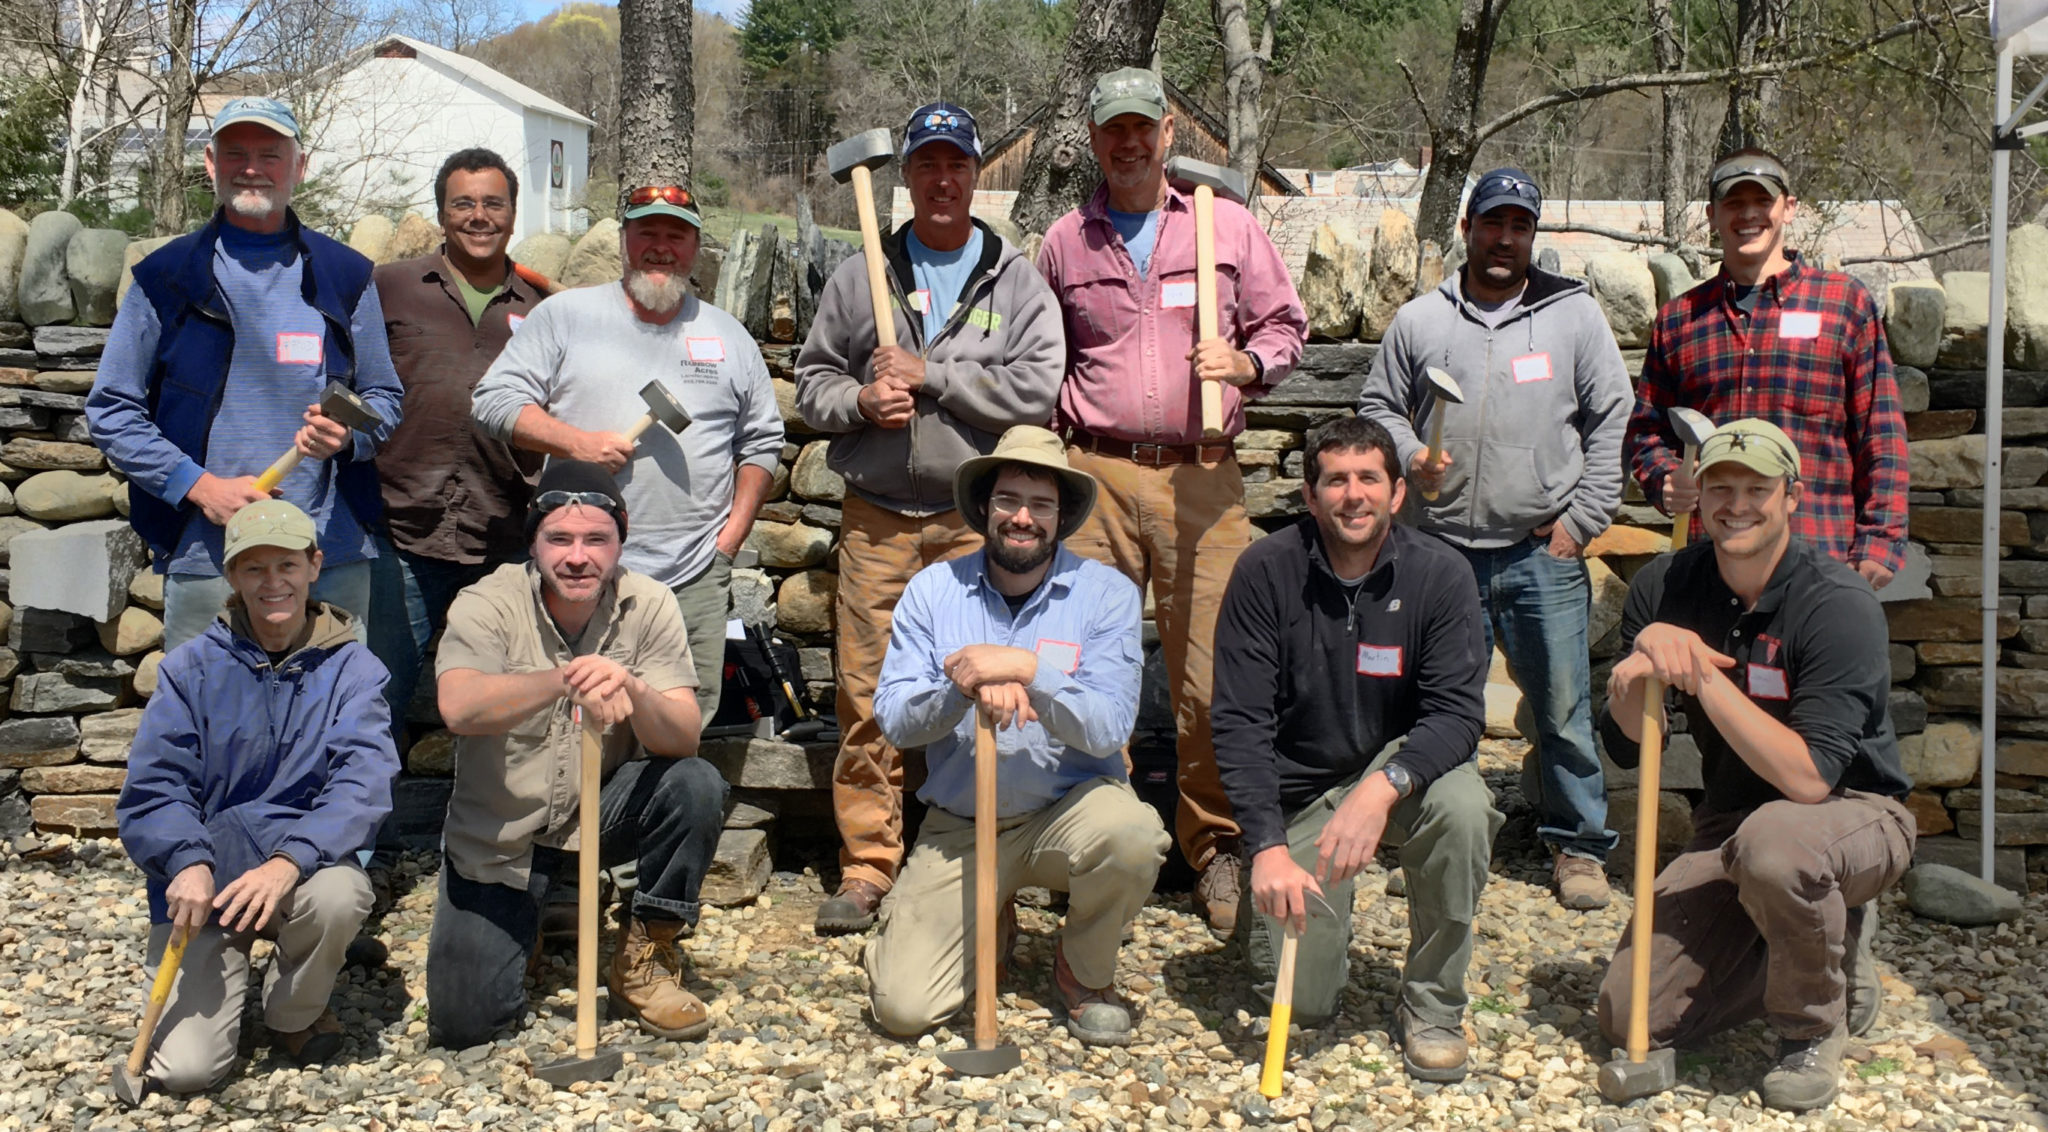 Stone Shaping Course 2016 group photo at The Stone Trust